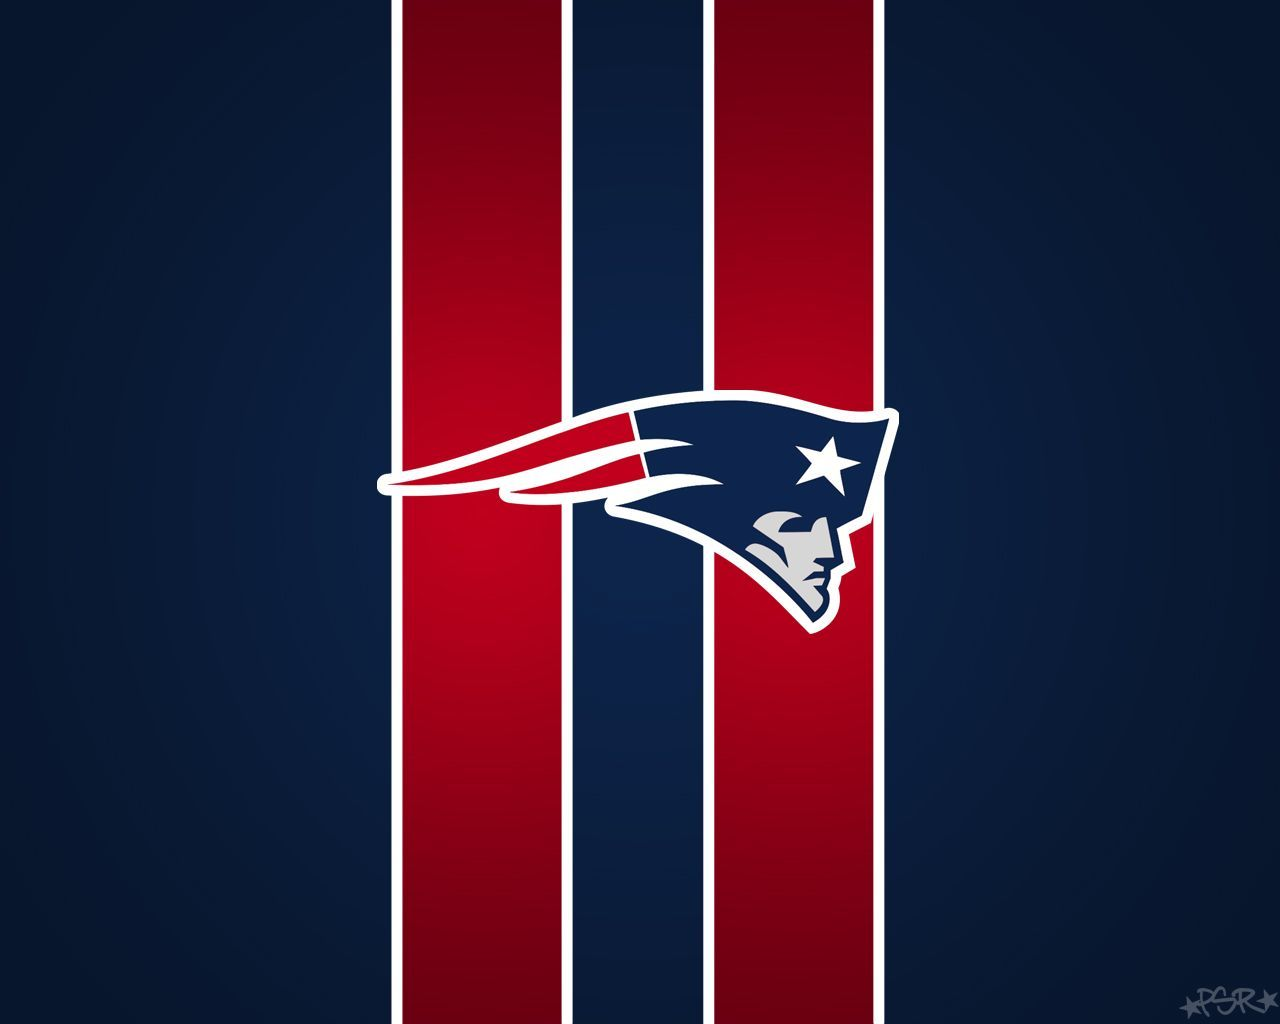 Patriots Hd Wallpapers Top Free Patriots Hd Backgrounds